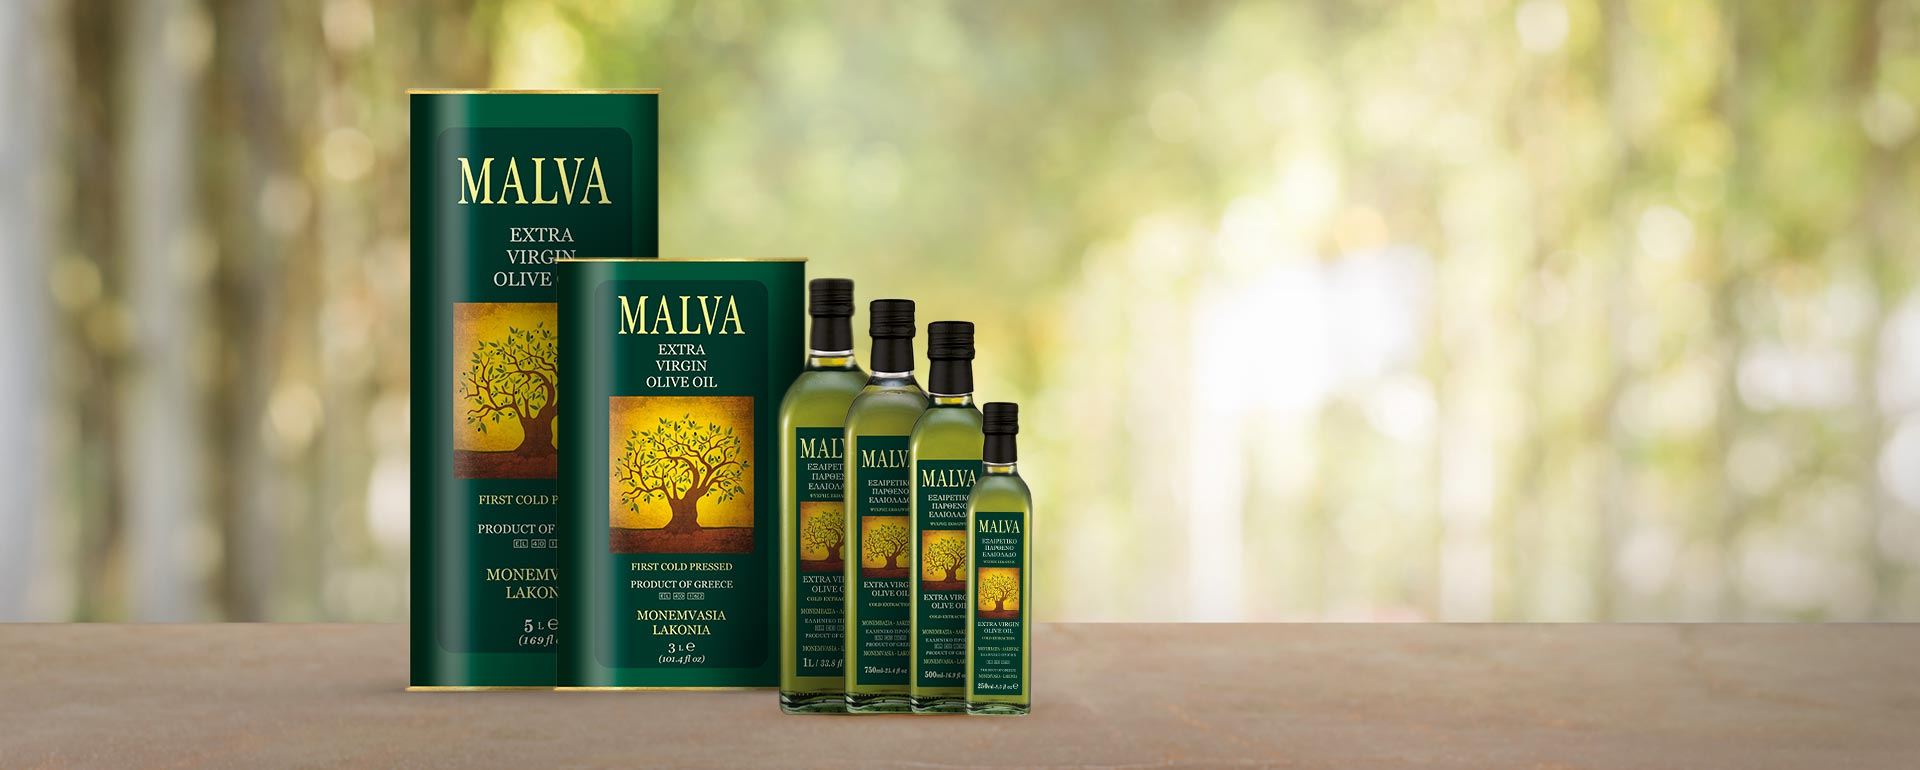 oilmalva products